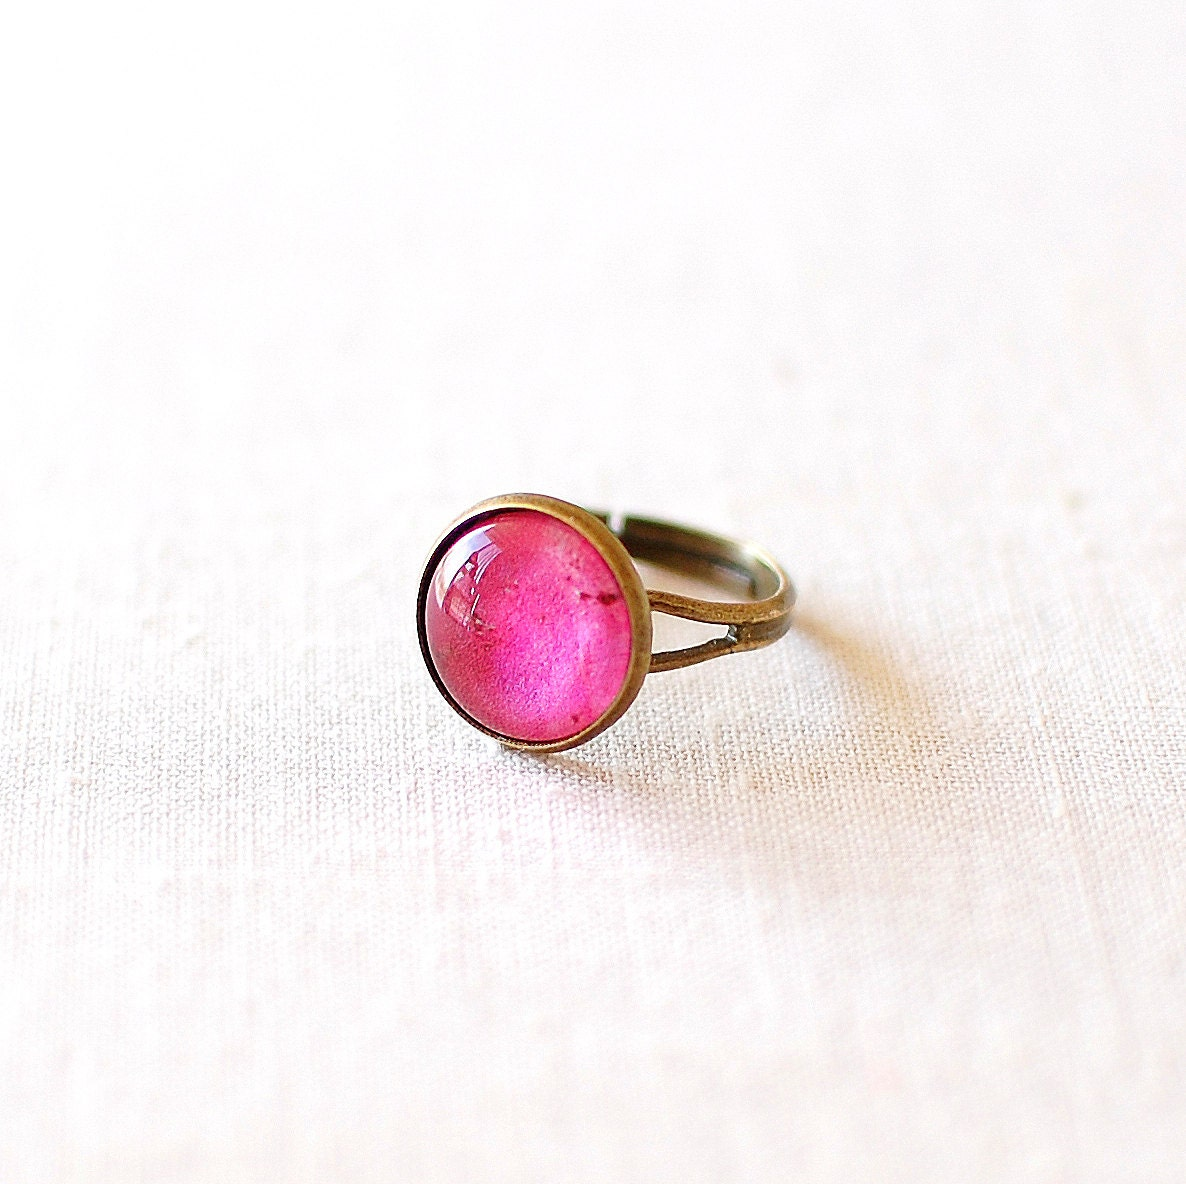 Ruby Ring, Hot Pink Adjustable Glass Dome Ring. - JujuTreasures